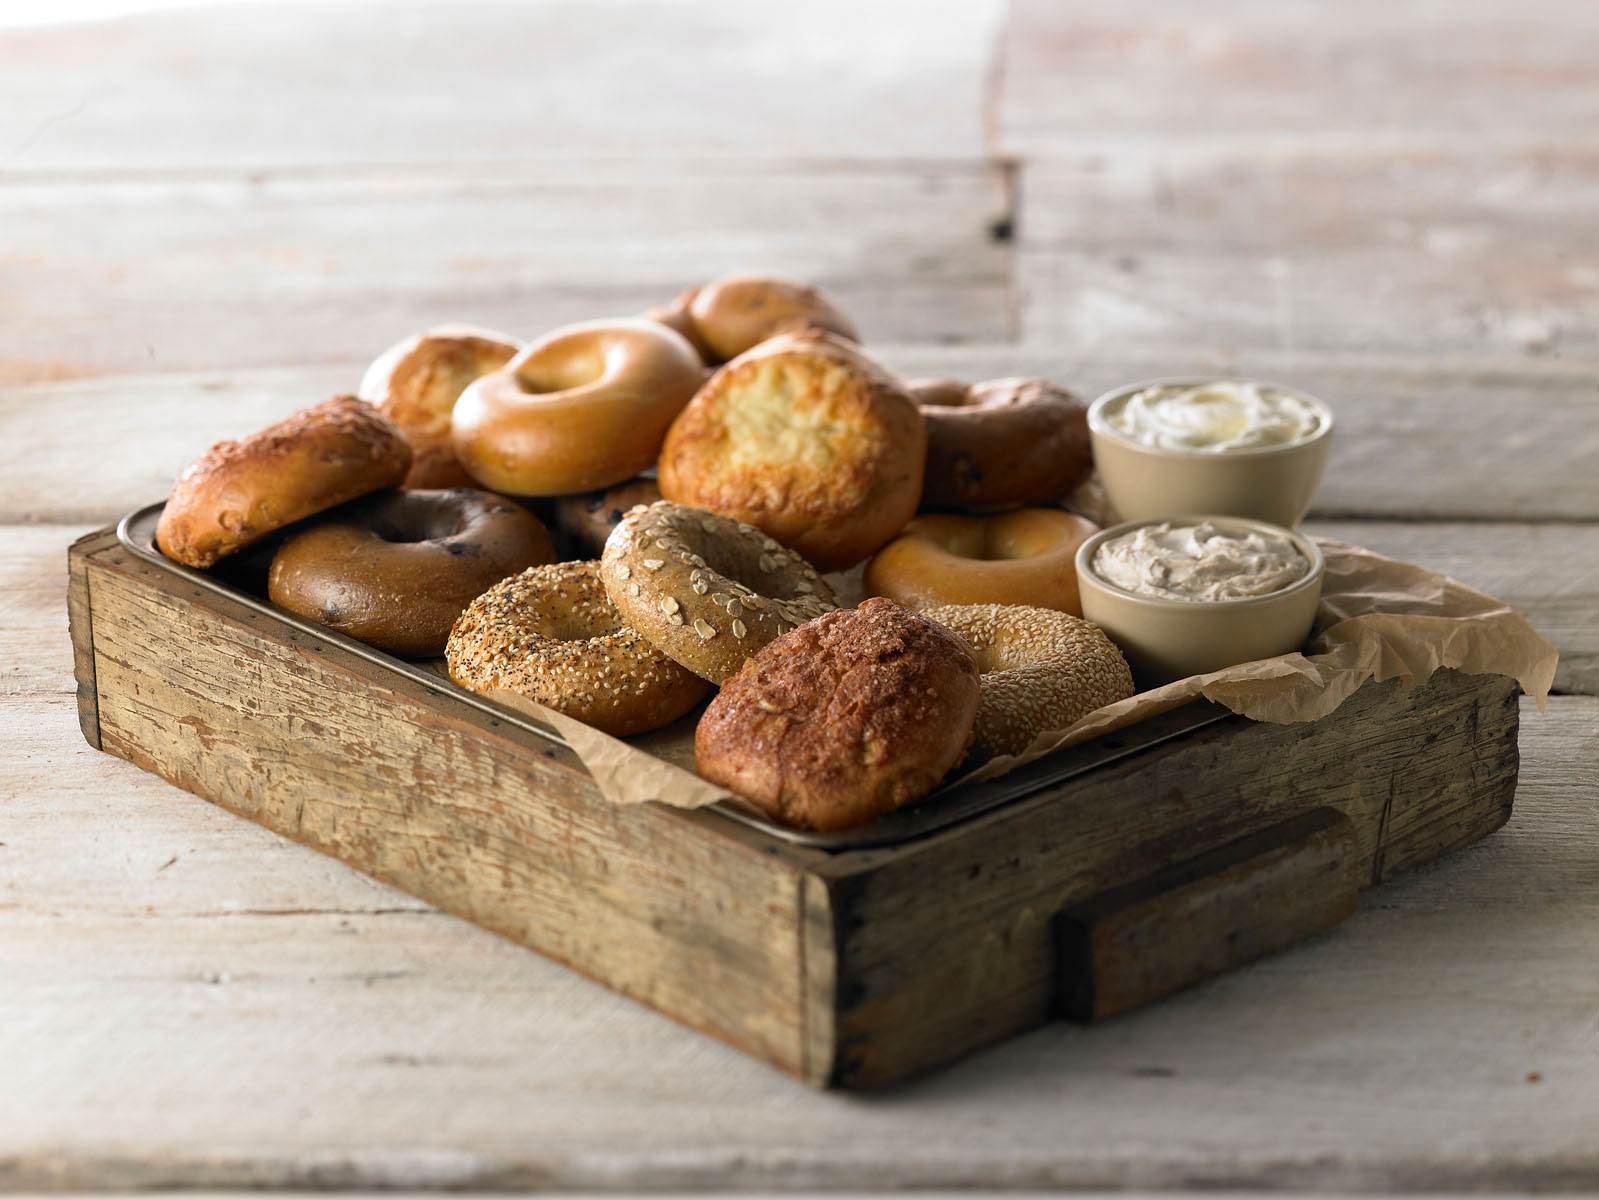 How To Get A Free Bagel From Panera Every Day For The Rest